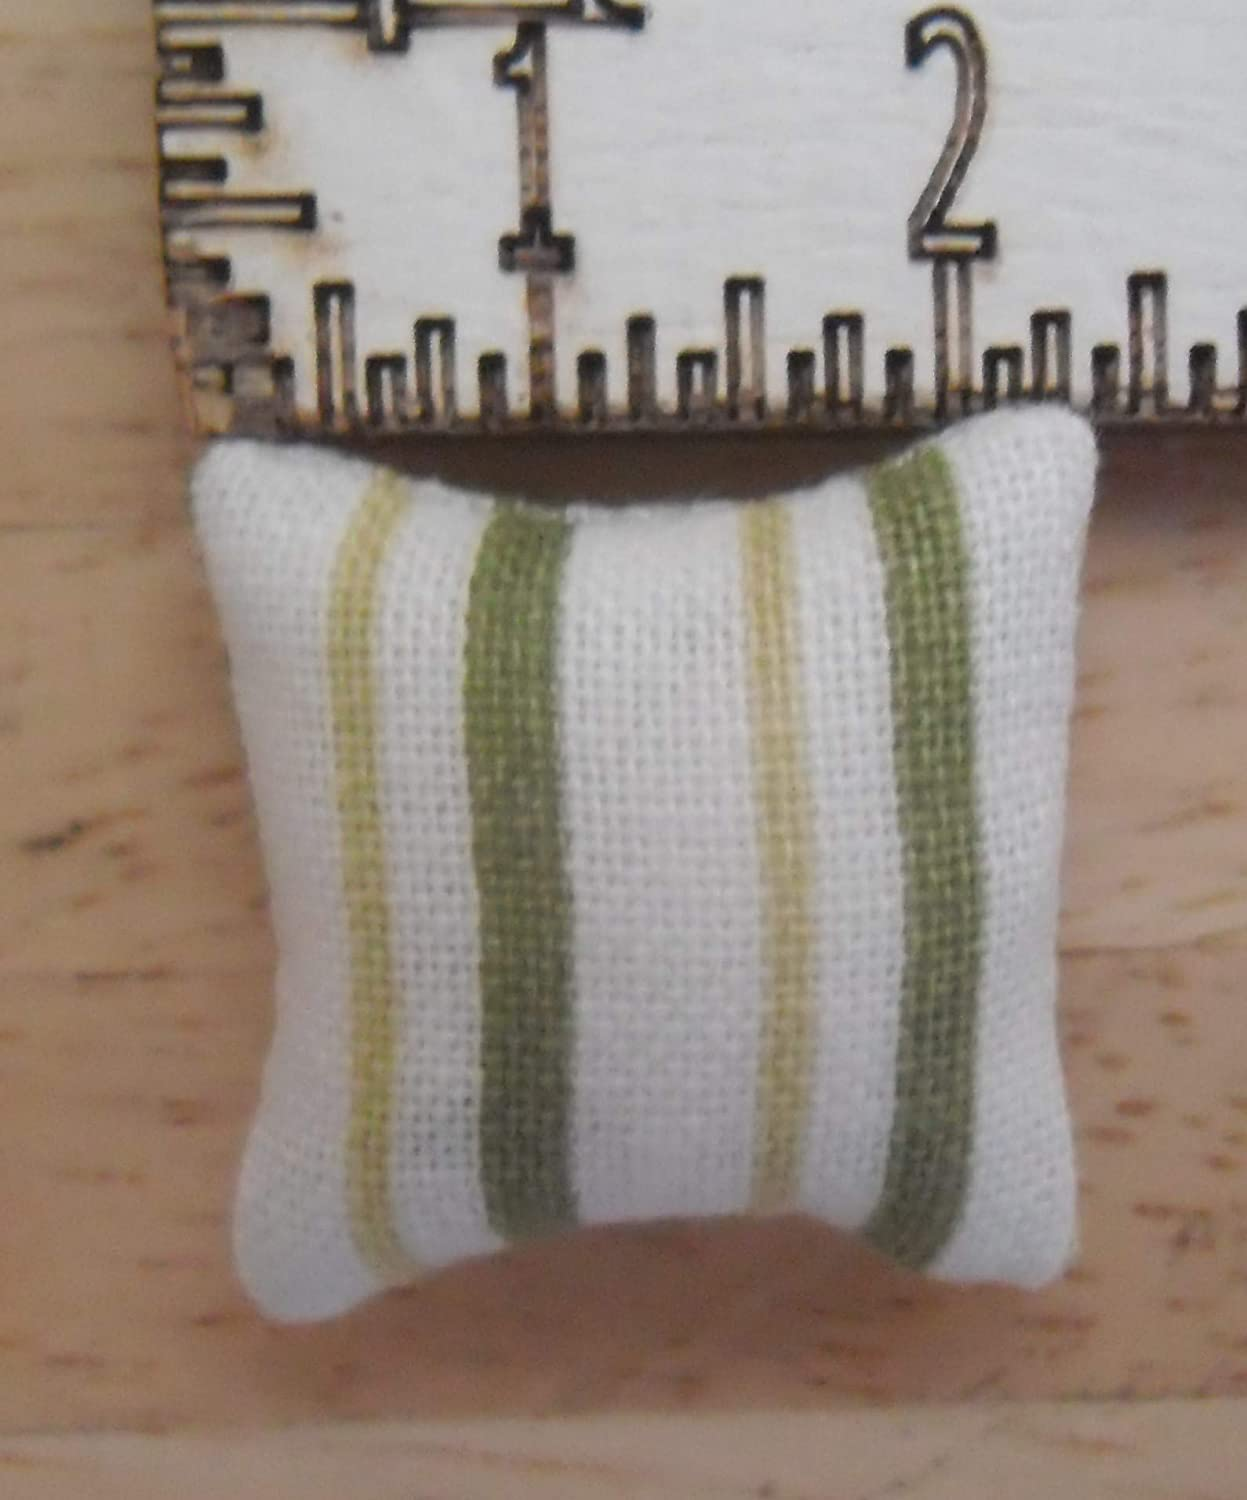 1//24th Scale Dolls House Printed Fabric Cushions Stripes Design in Shades of Green /& White